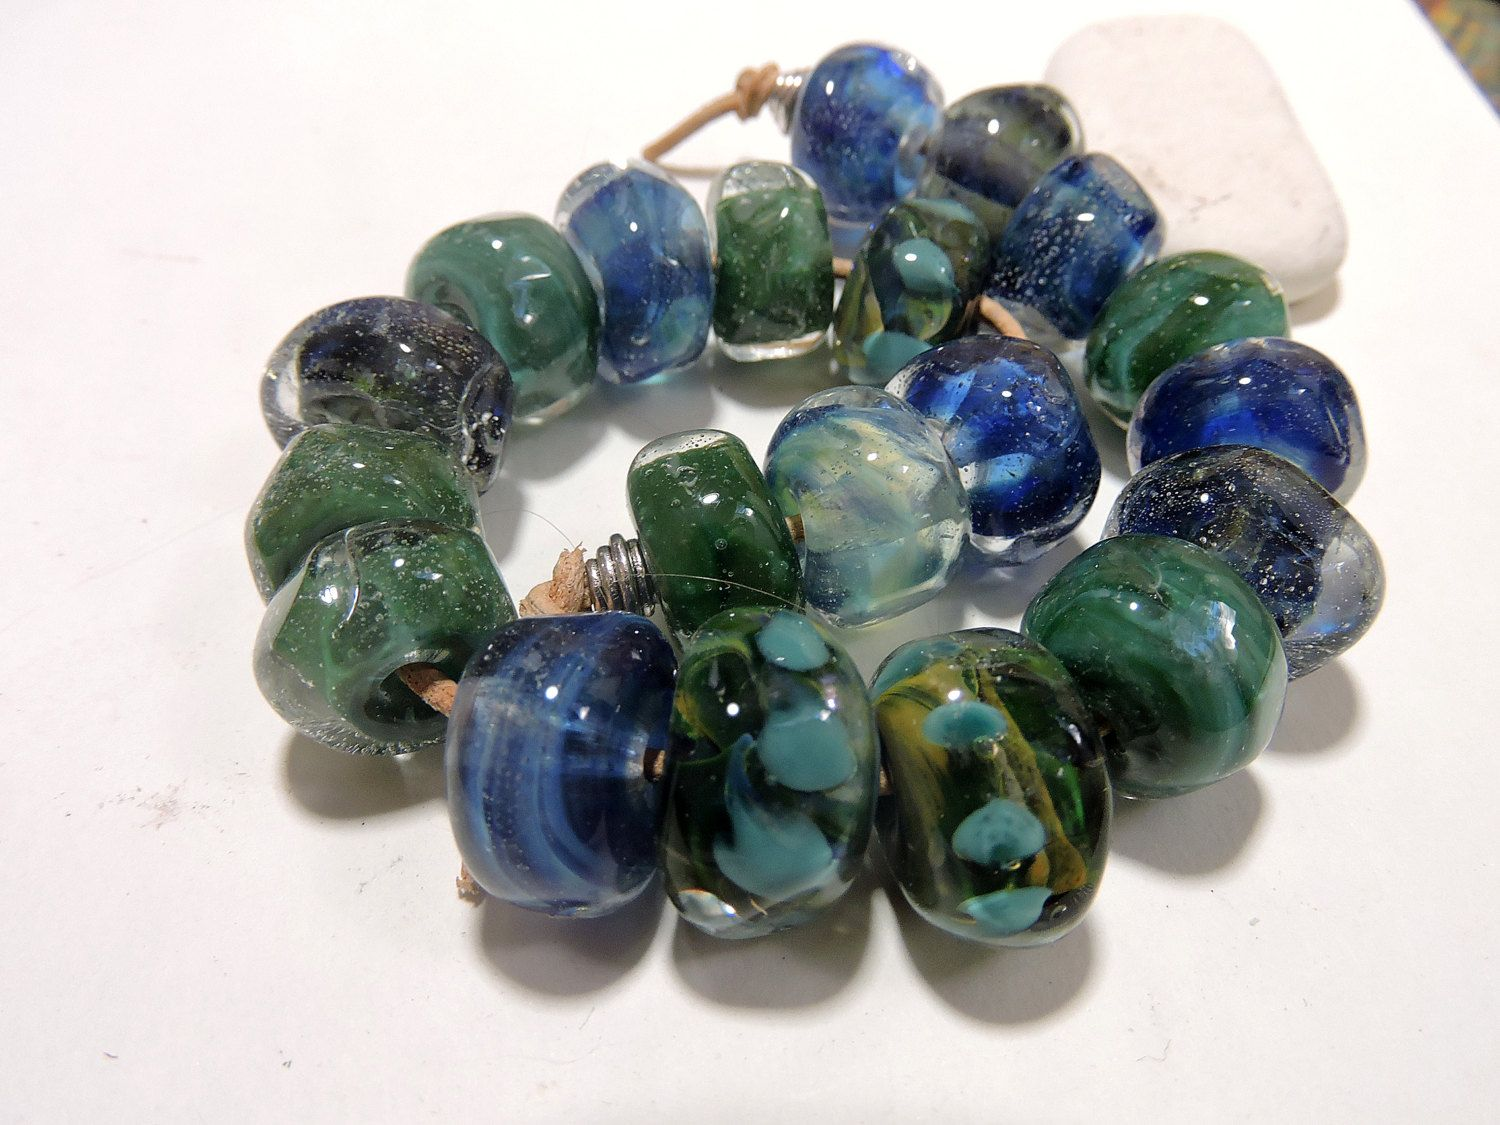 lampwork beads pacific two sisters designs 061116b by on etsy